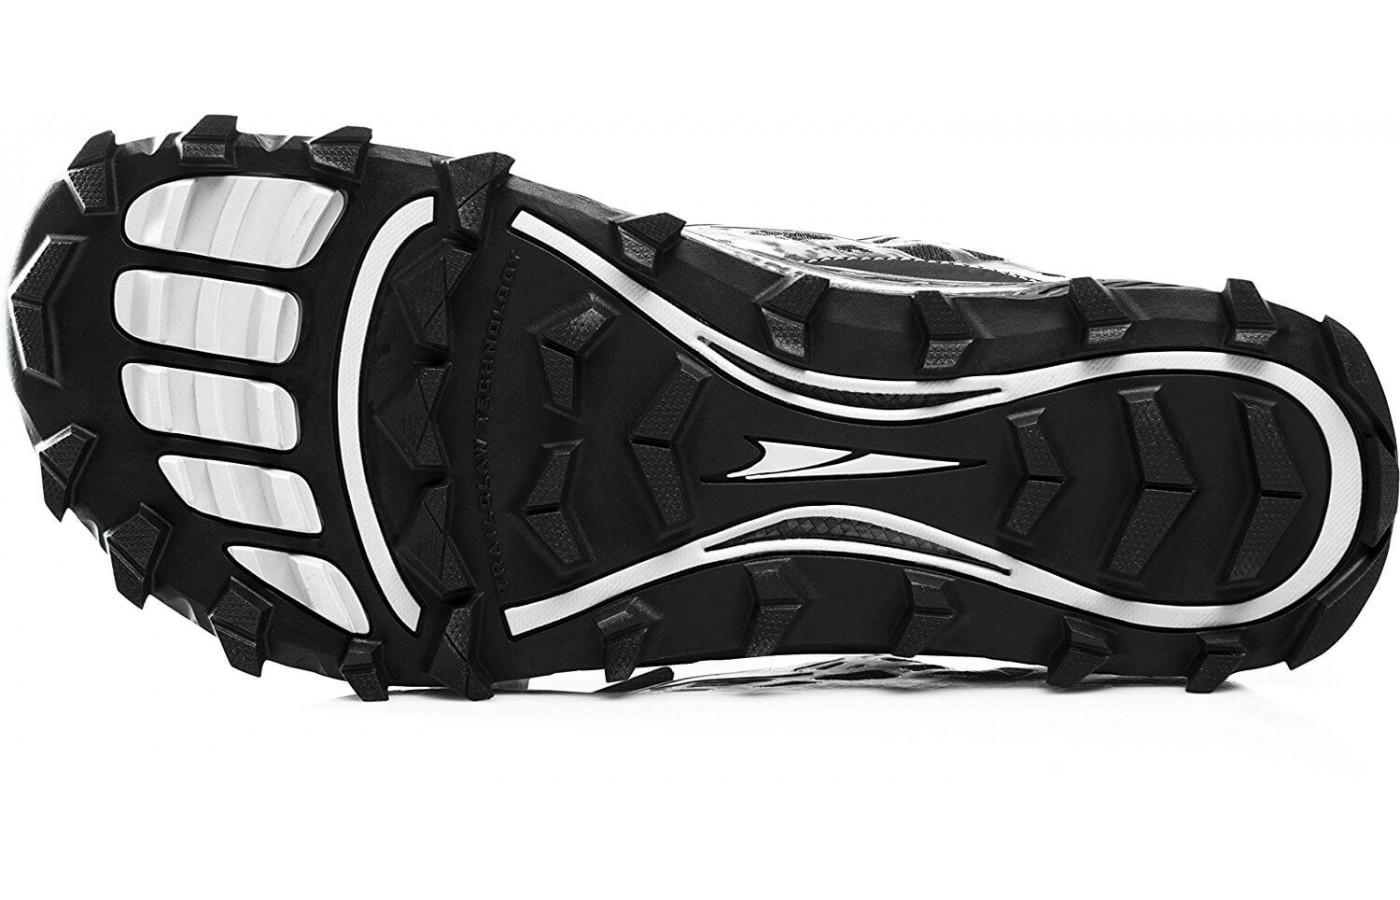 The aggressive outsole provides traction on rugged terrain